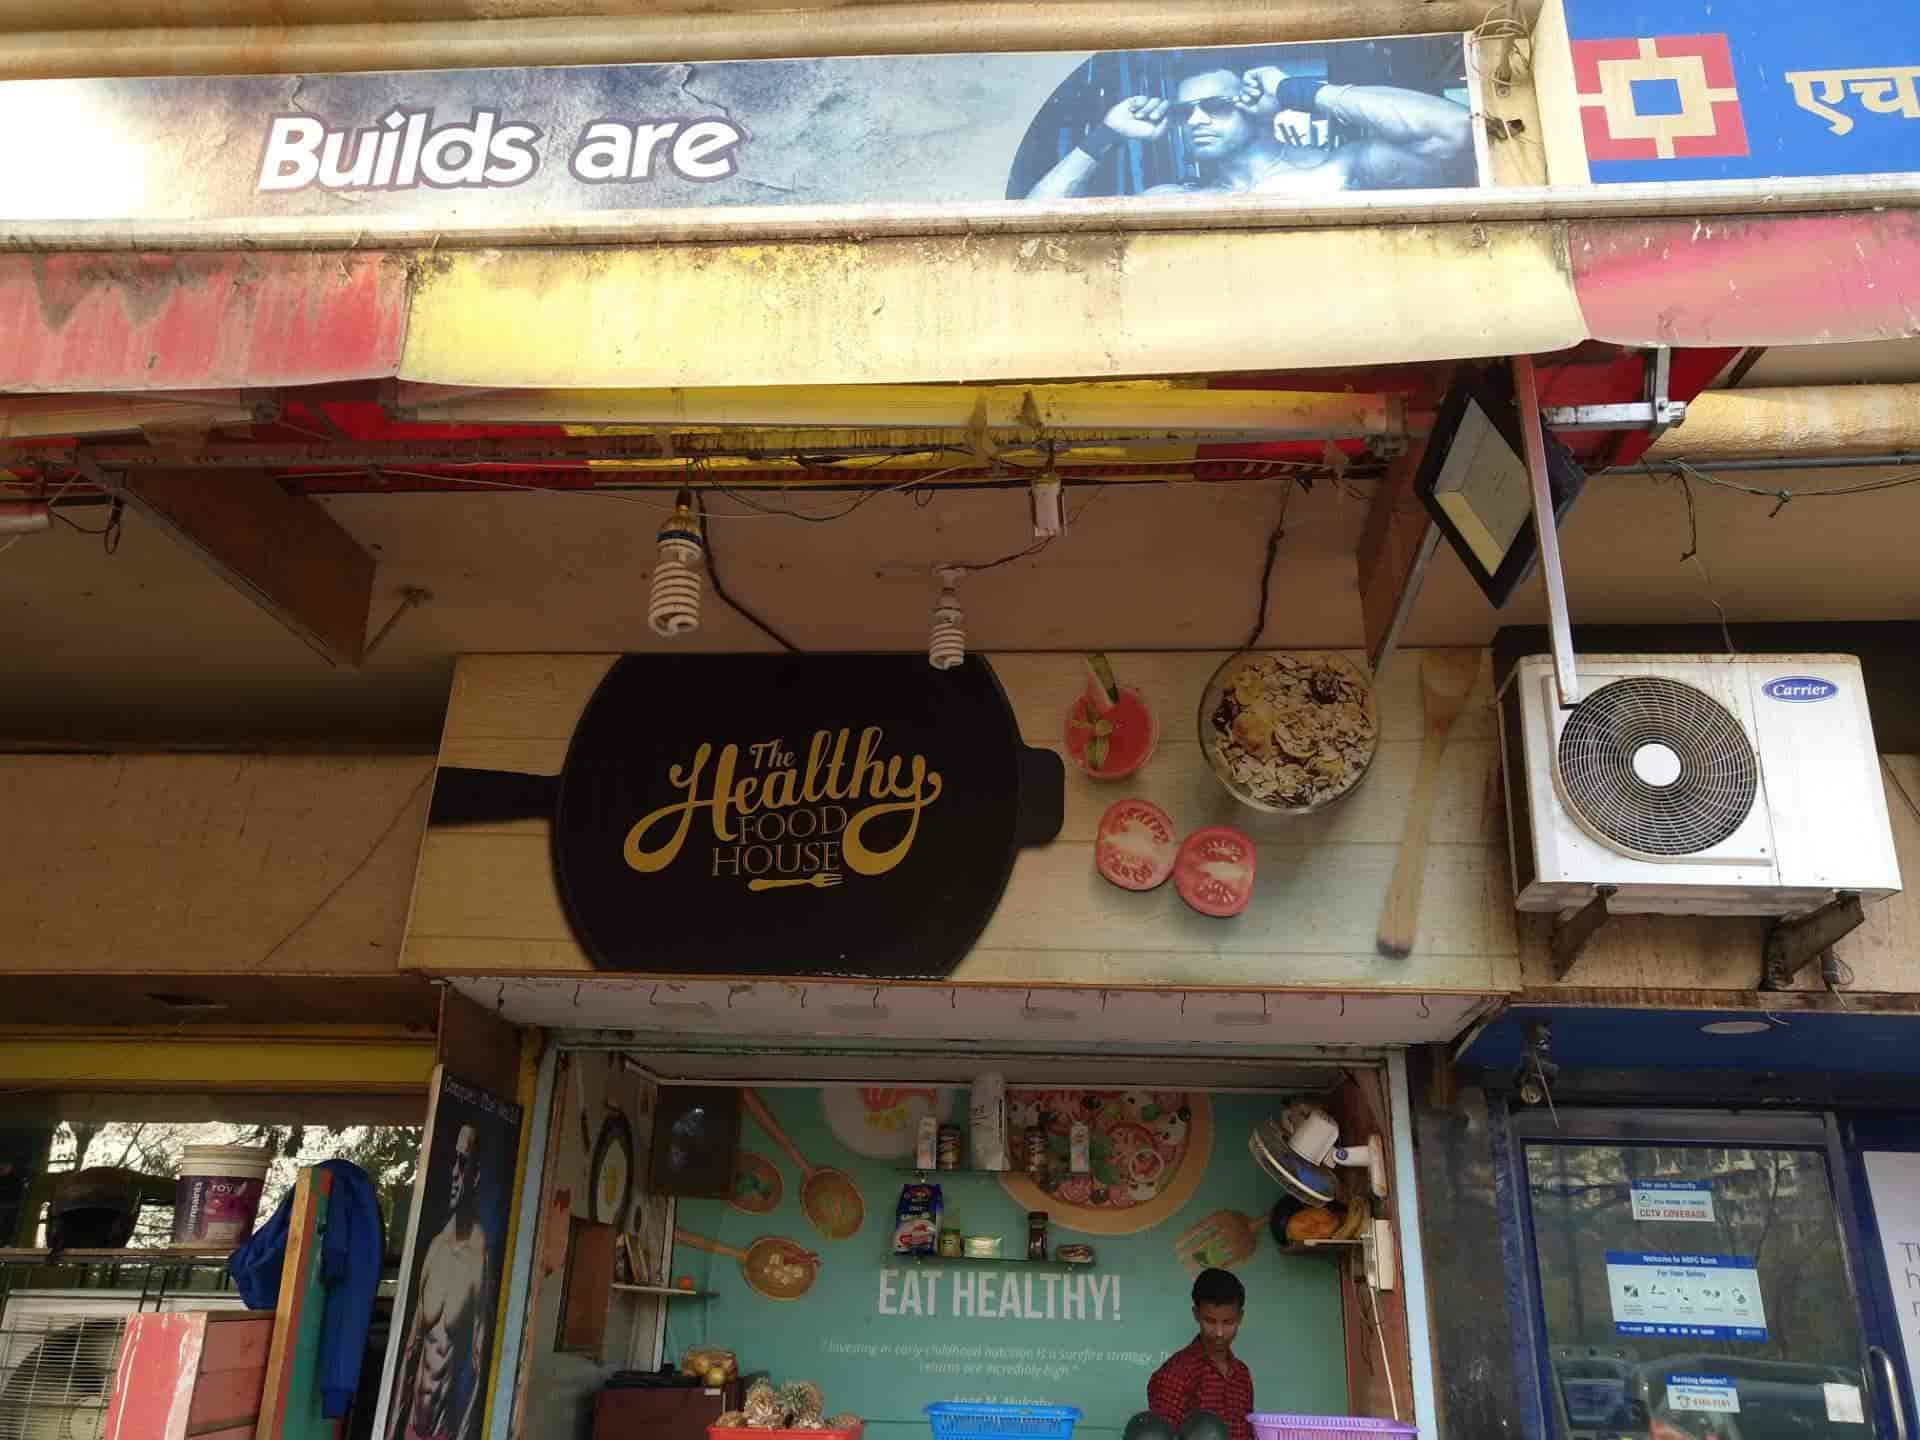 The Healthy Food House Photos, Kandivali West, Mumbai- Pictures